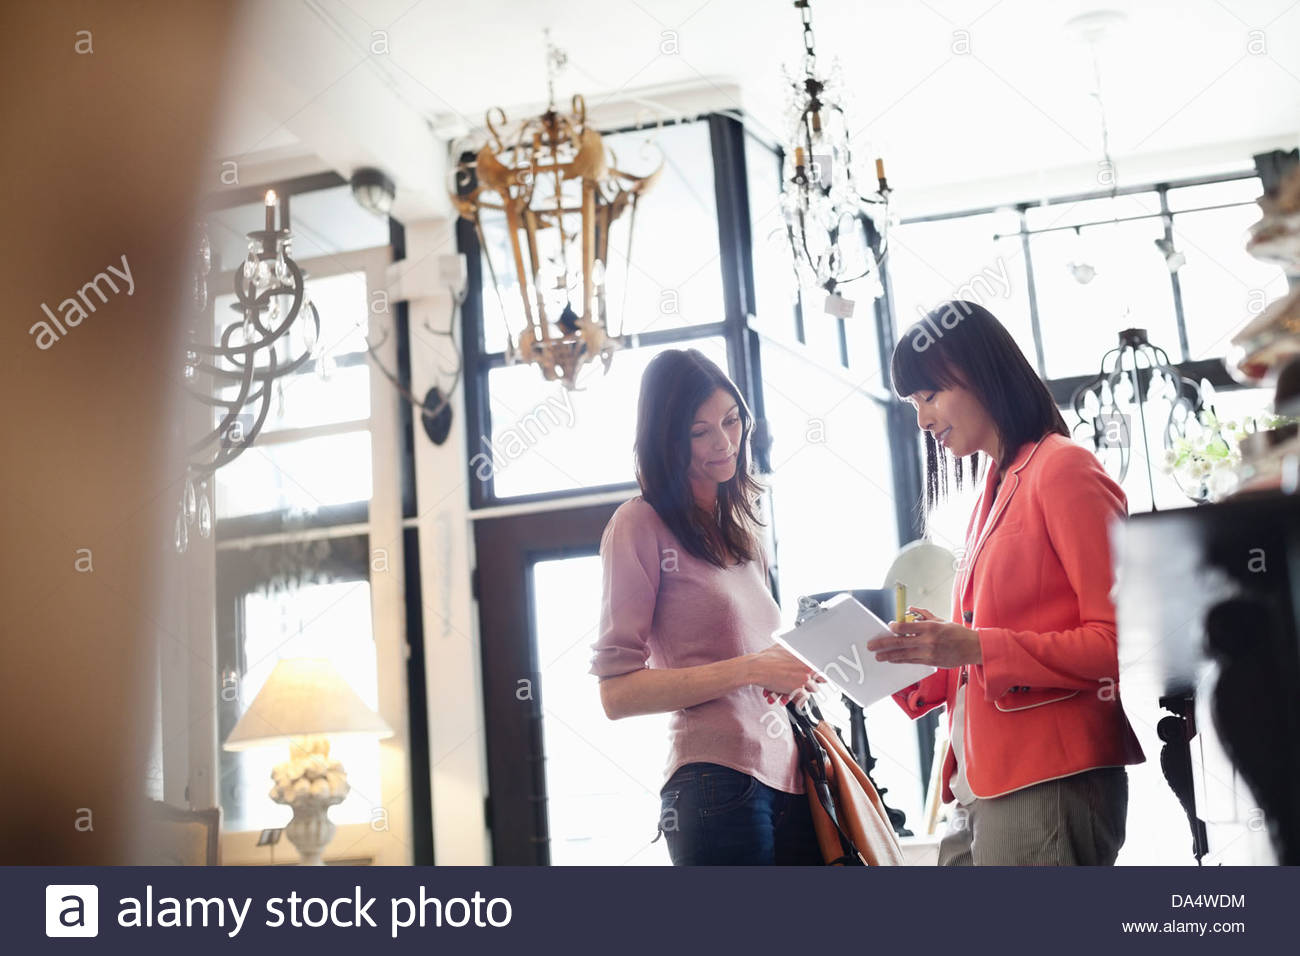 Femmina proprietario business aiutando il cliente a furniture store Foto Stock